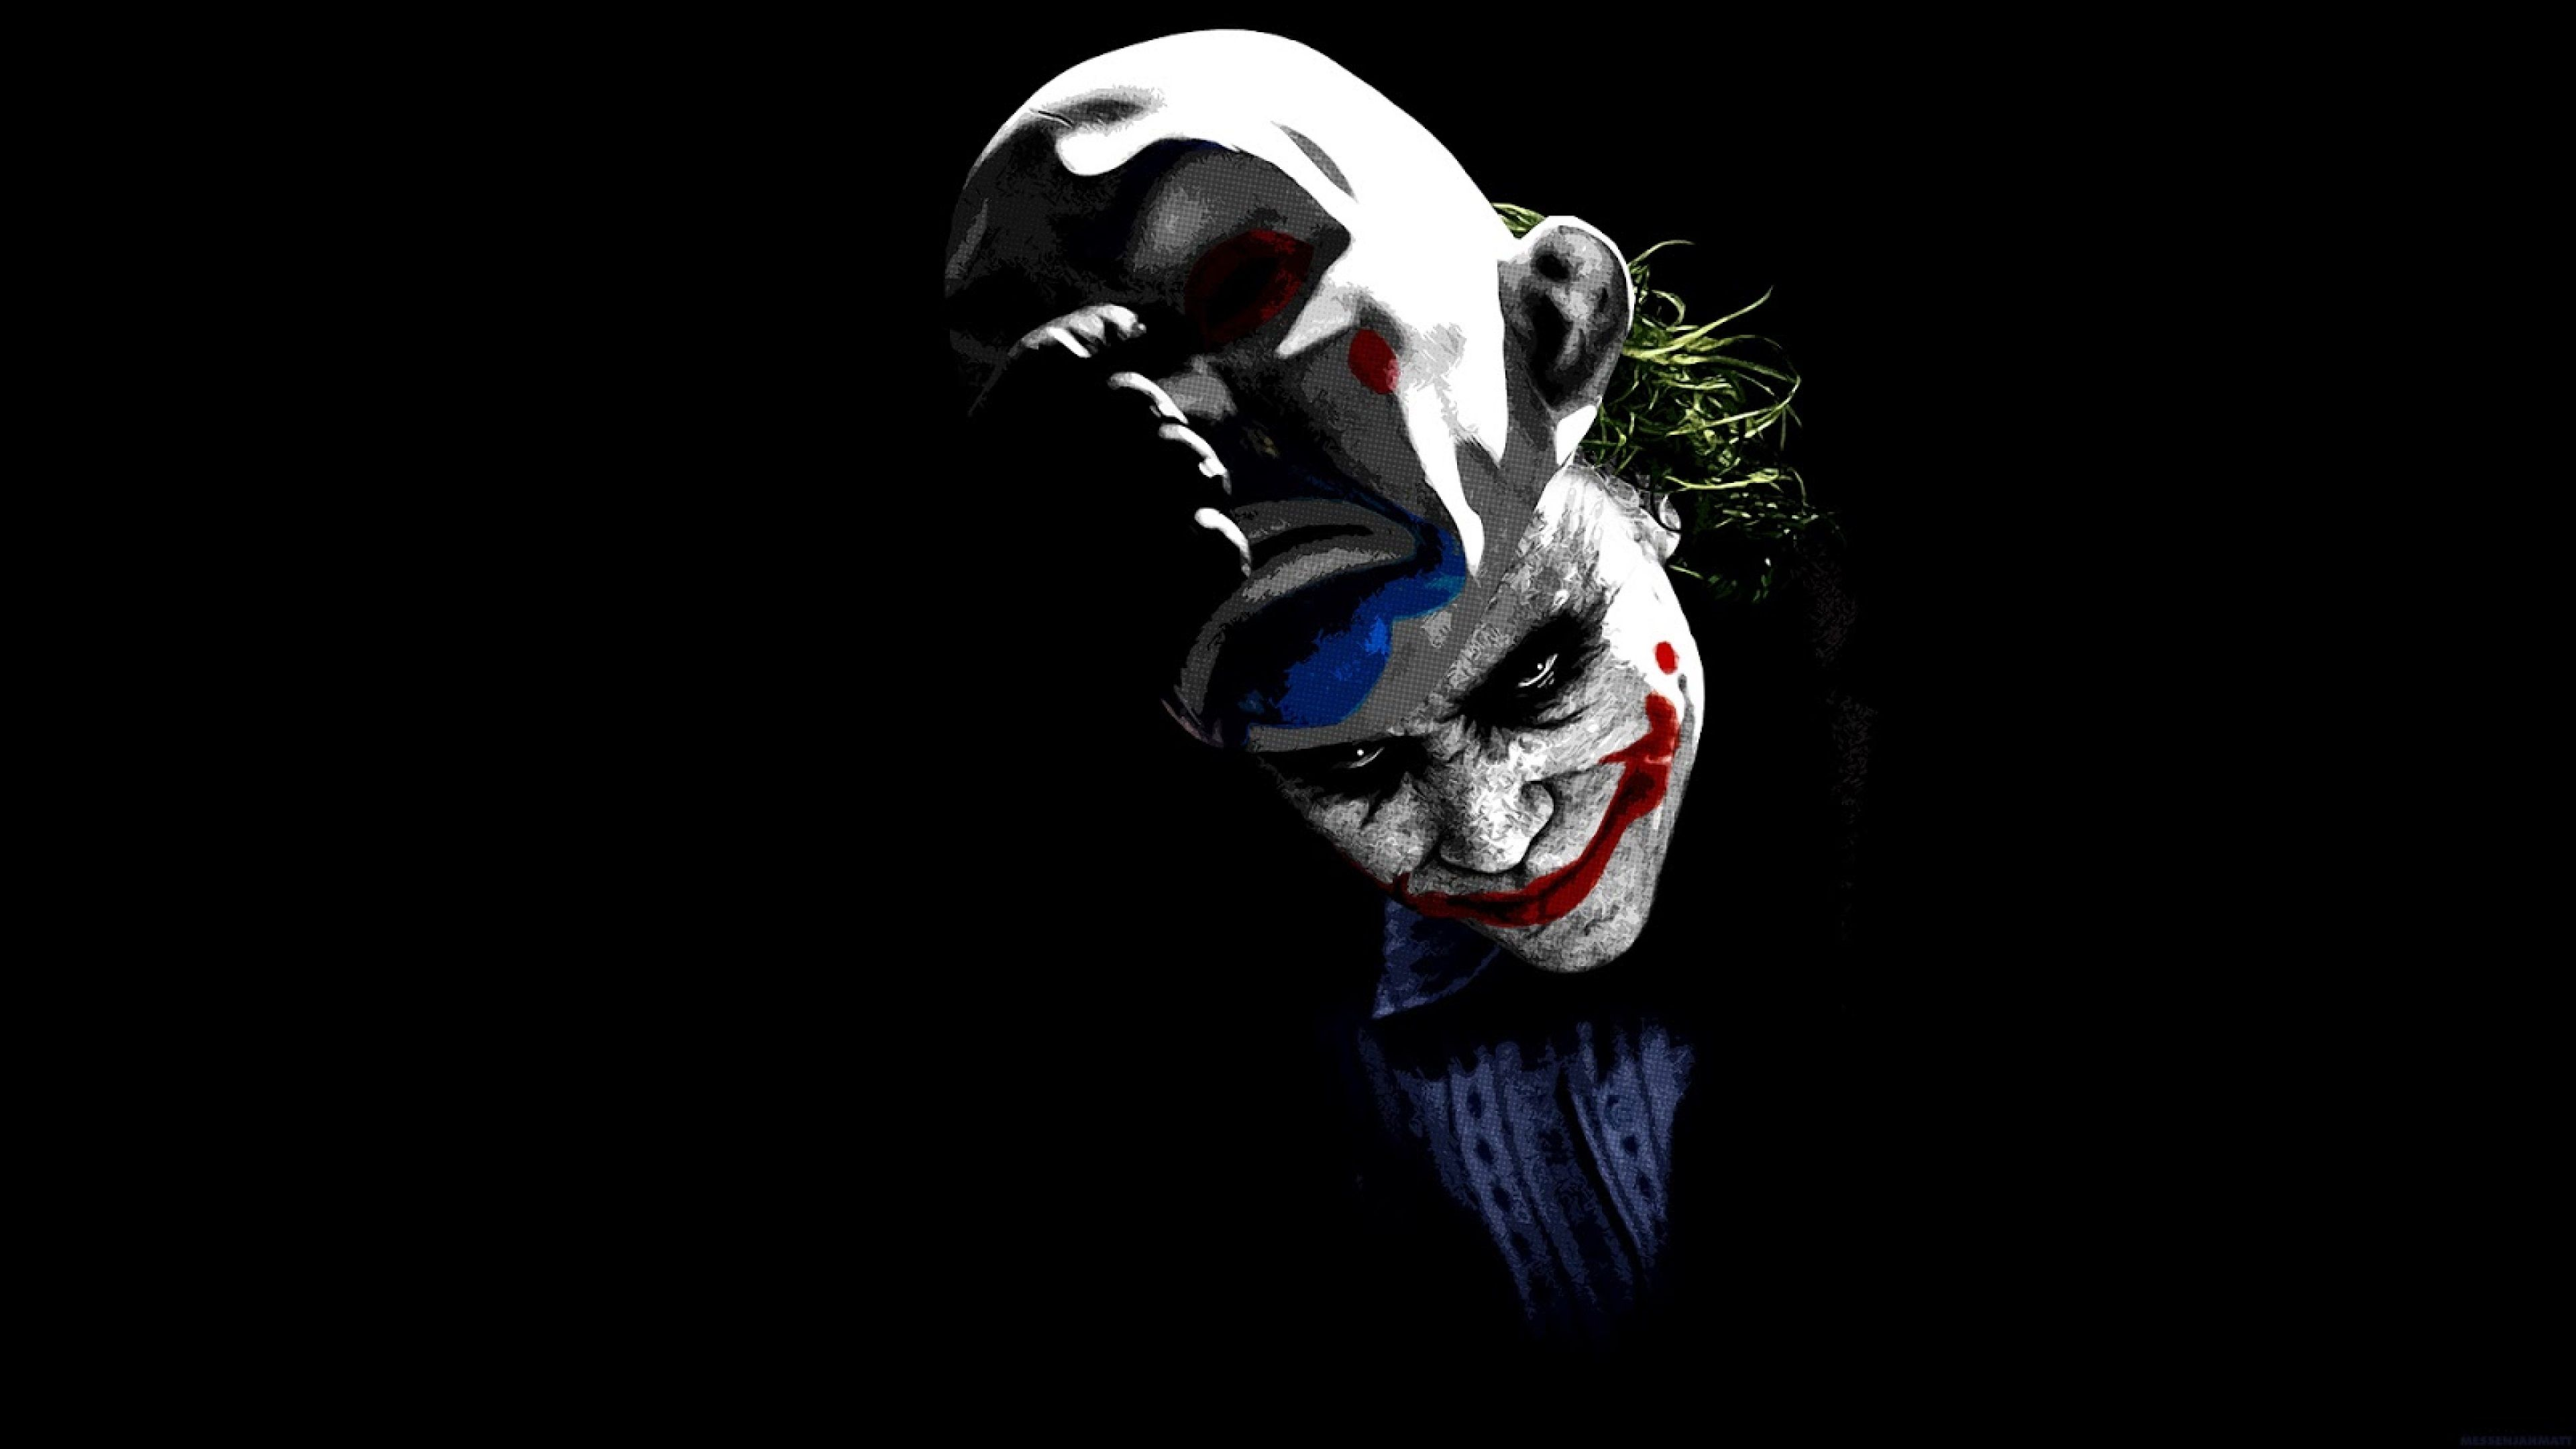 Filename 3840x2160 Joker 4k Pc Desktop Wallpaper Hd Resolution 3840x2160 File Size 468 Kb Uploa Pc Desktop Wallpaper Joker Iphone Wallpaper Joker Wallpapers